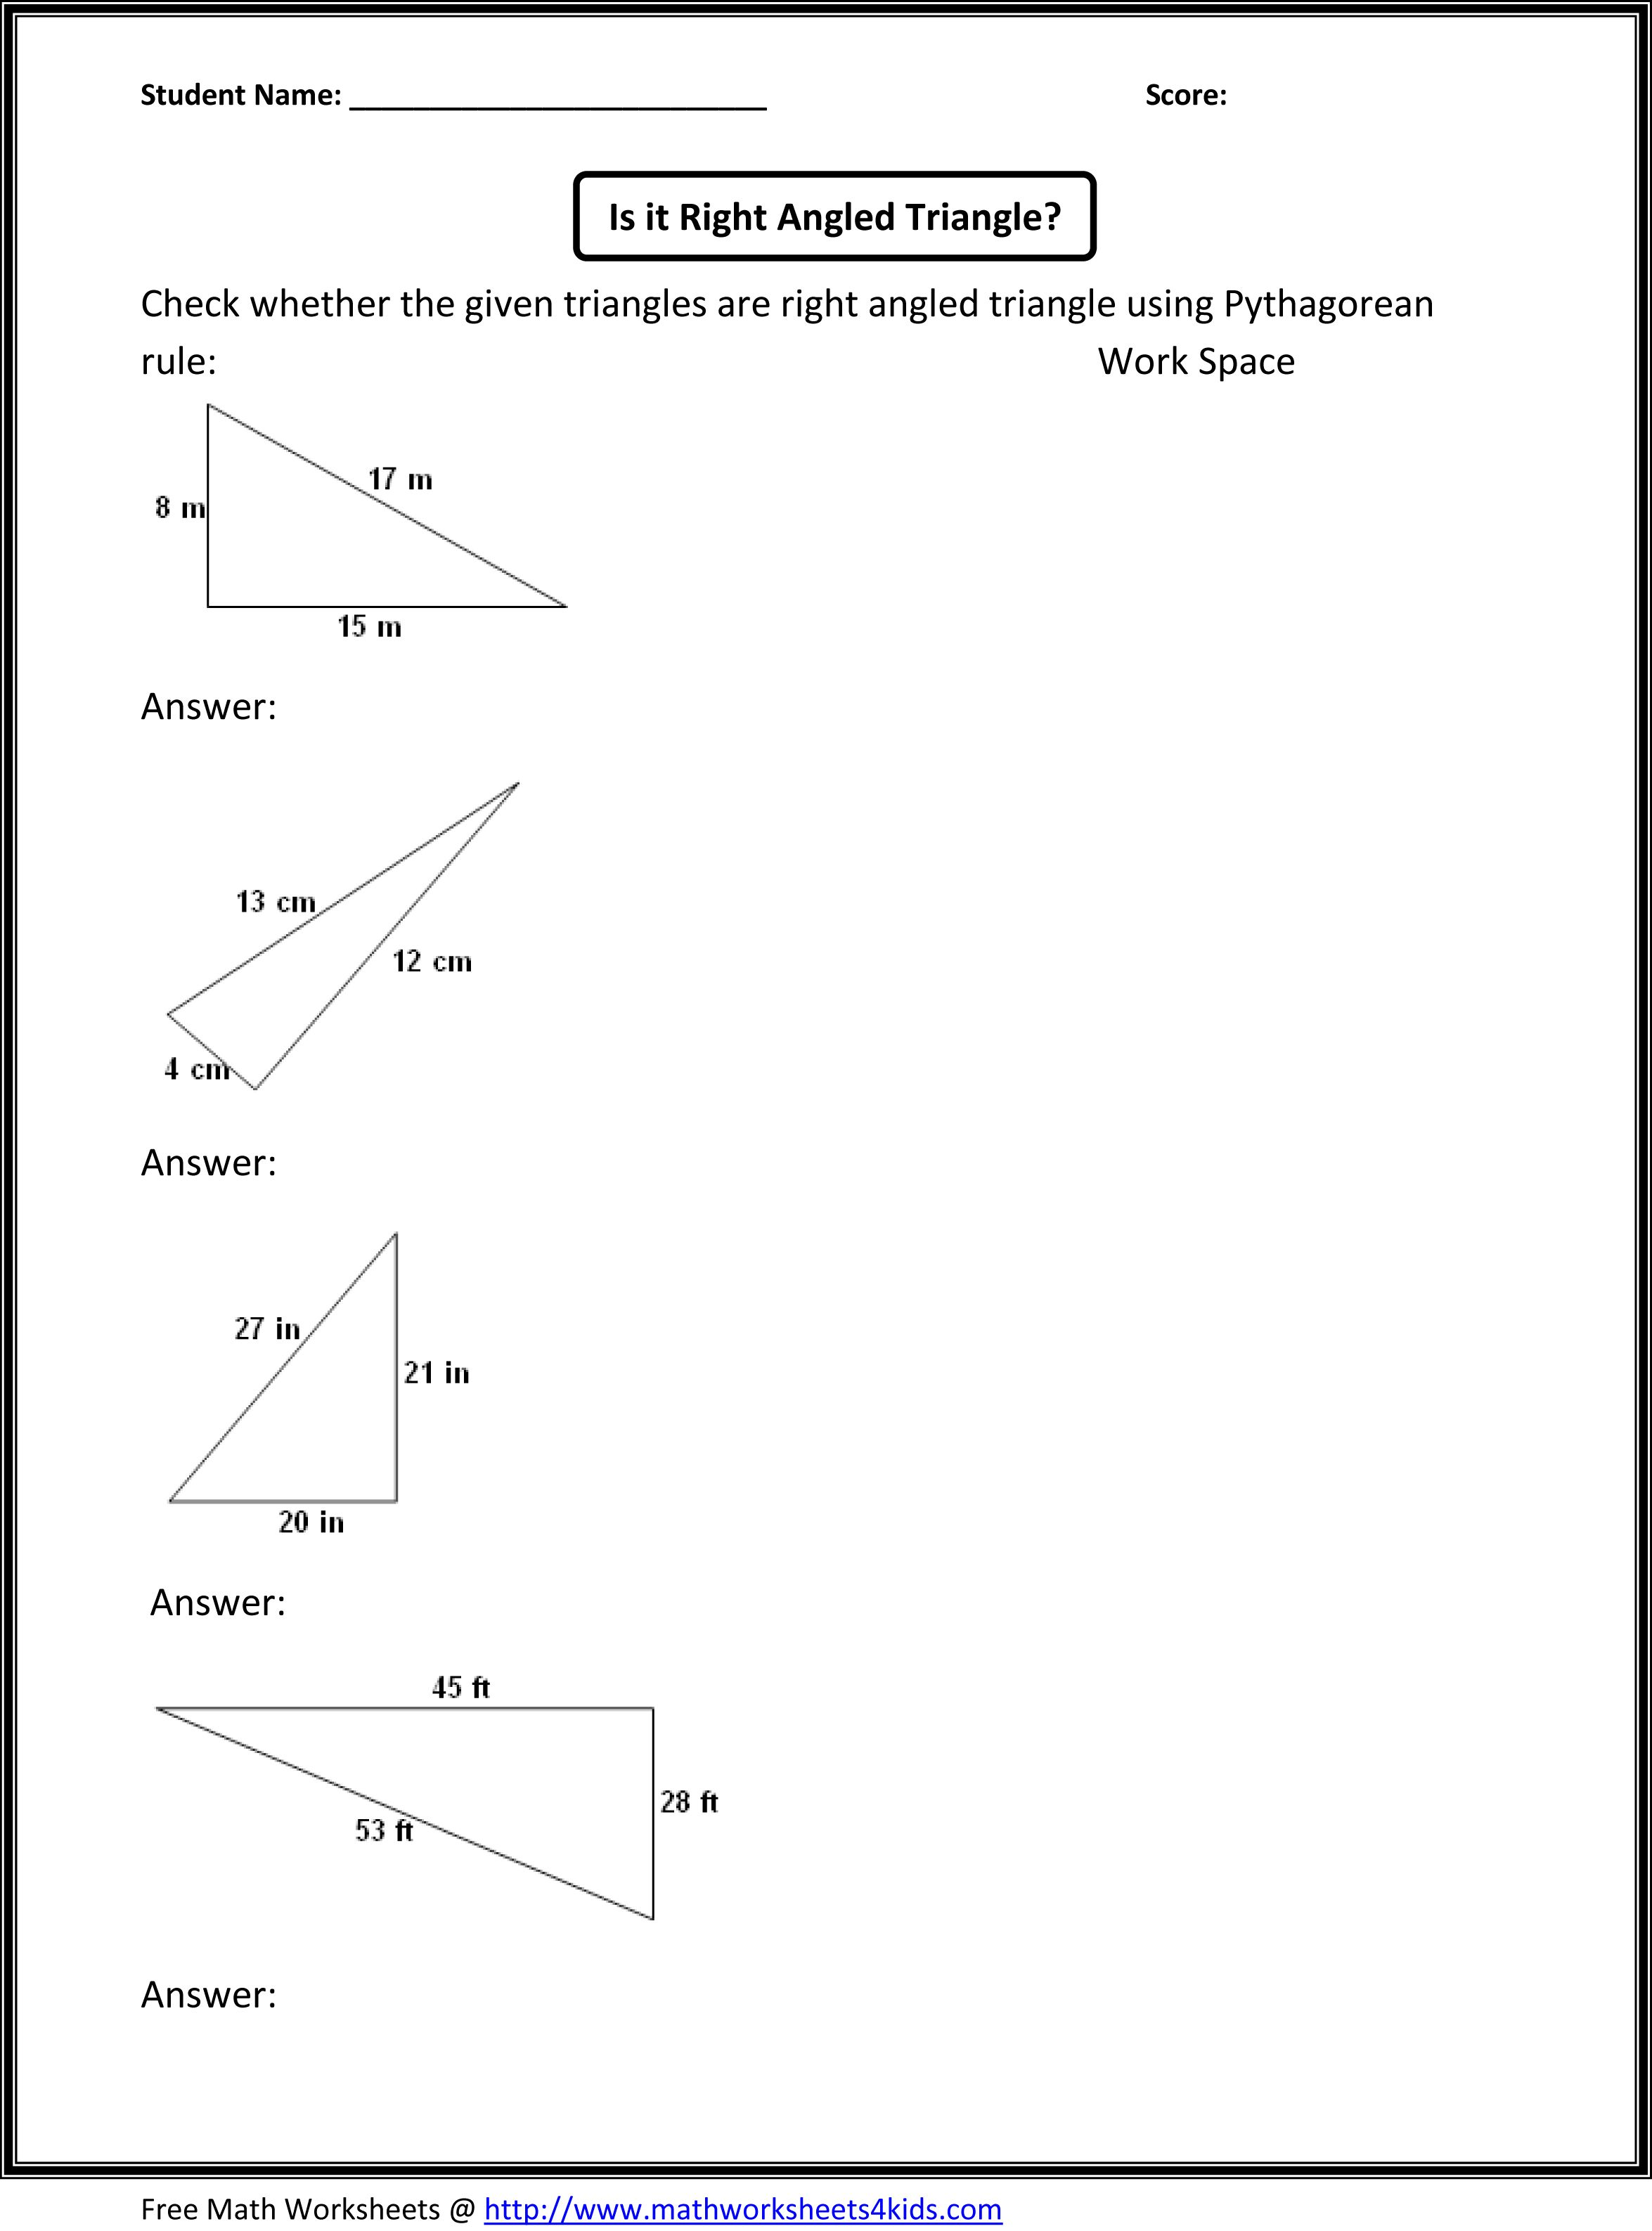 Printables Math Problems For 7th Graders Worksheets collection of 7th grade math worksheets printable free bloggakuten